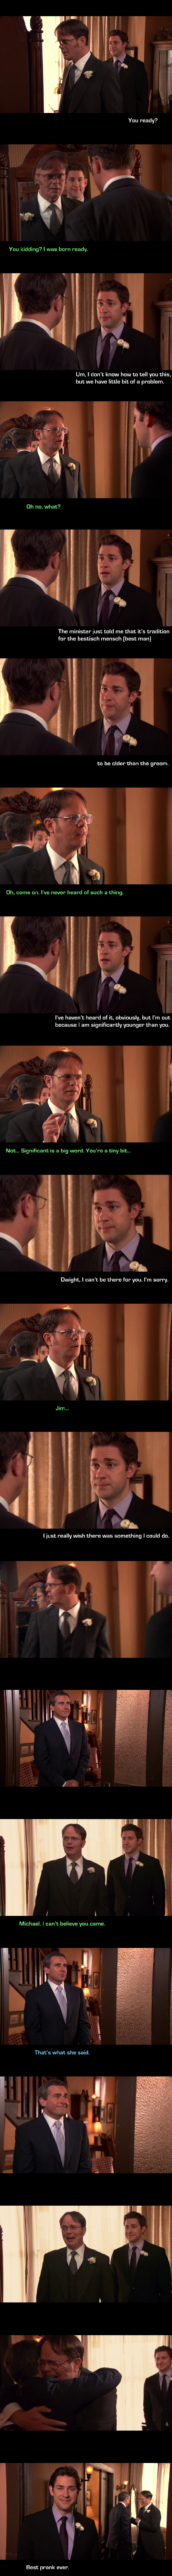 funny-office-dwight-jim-best-prank